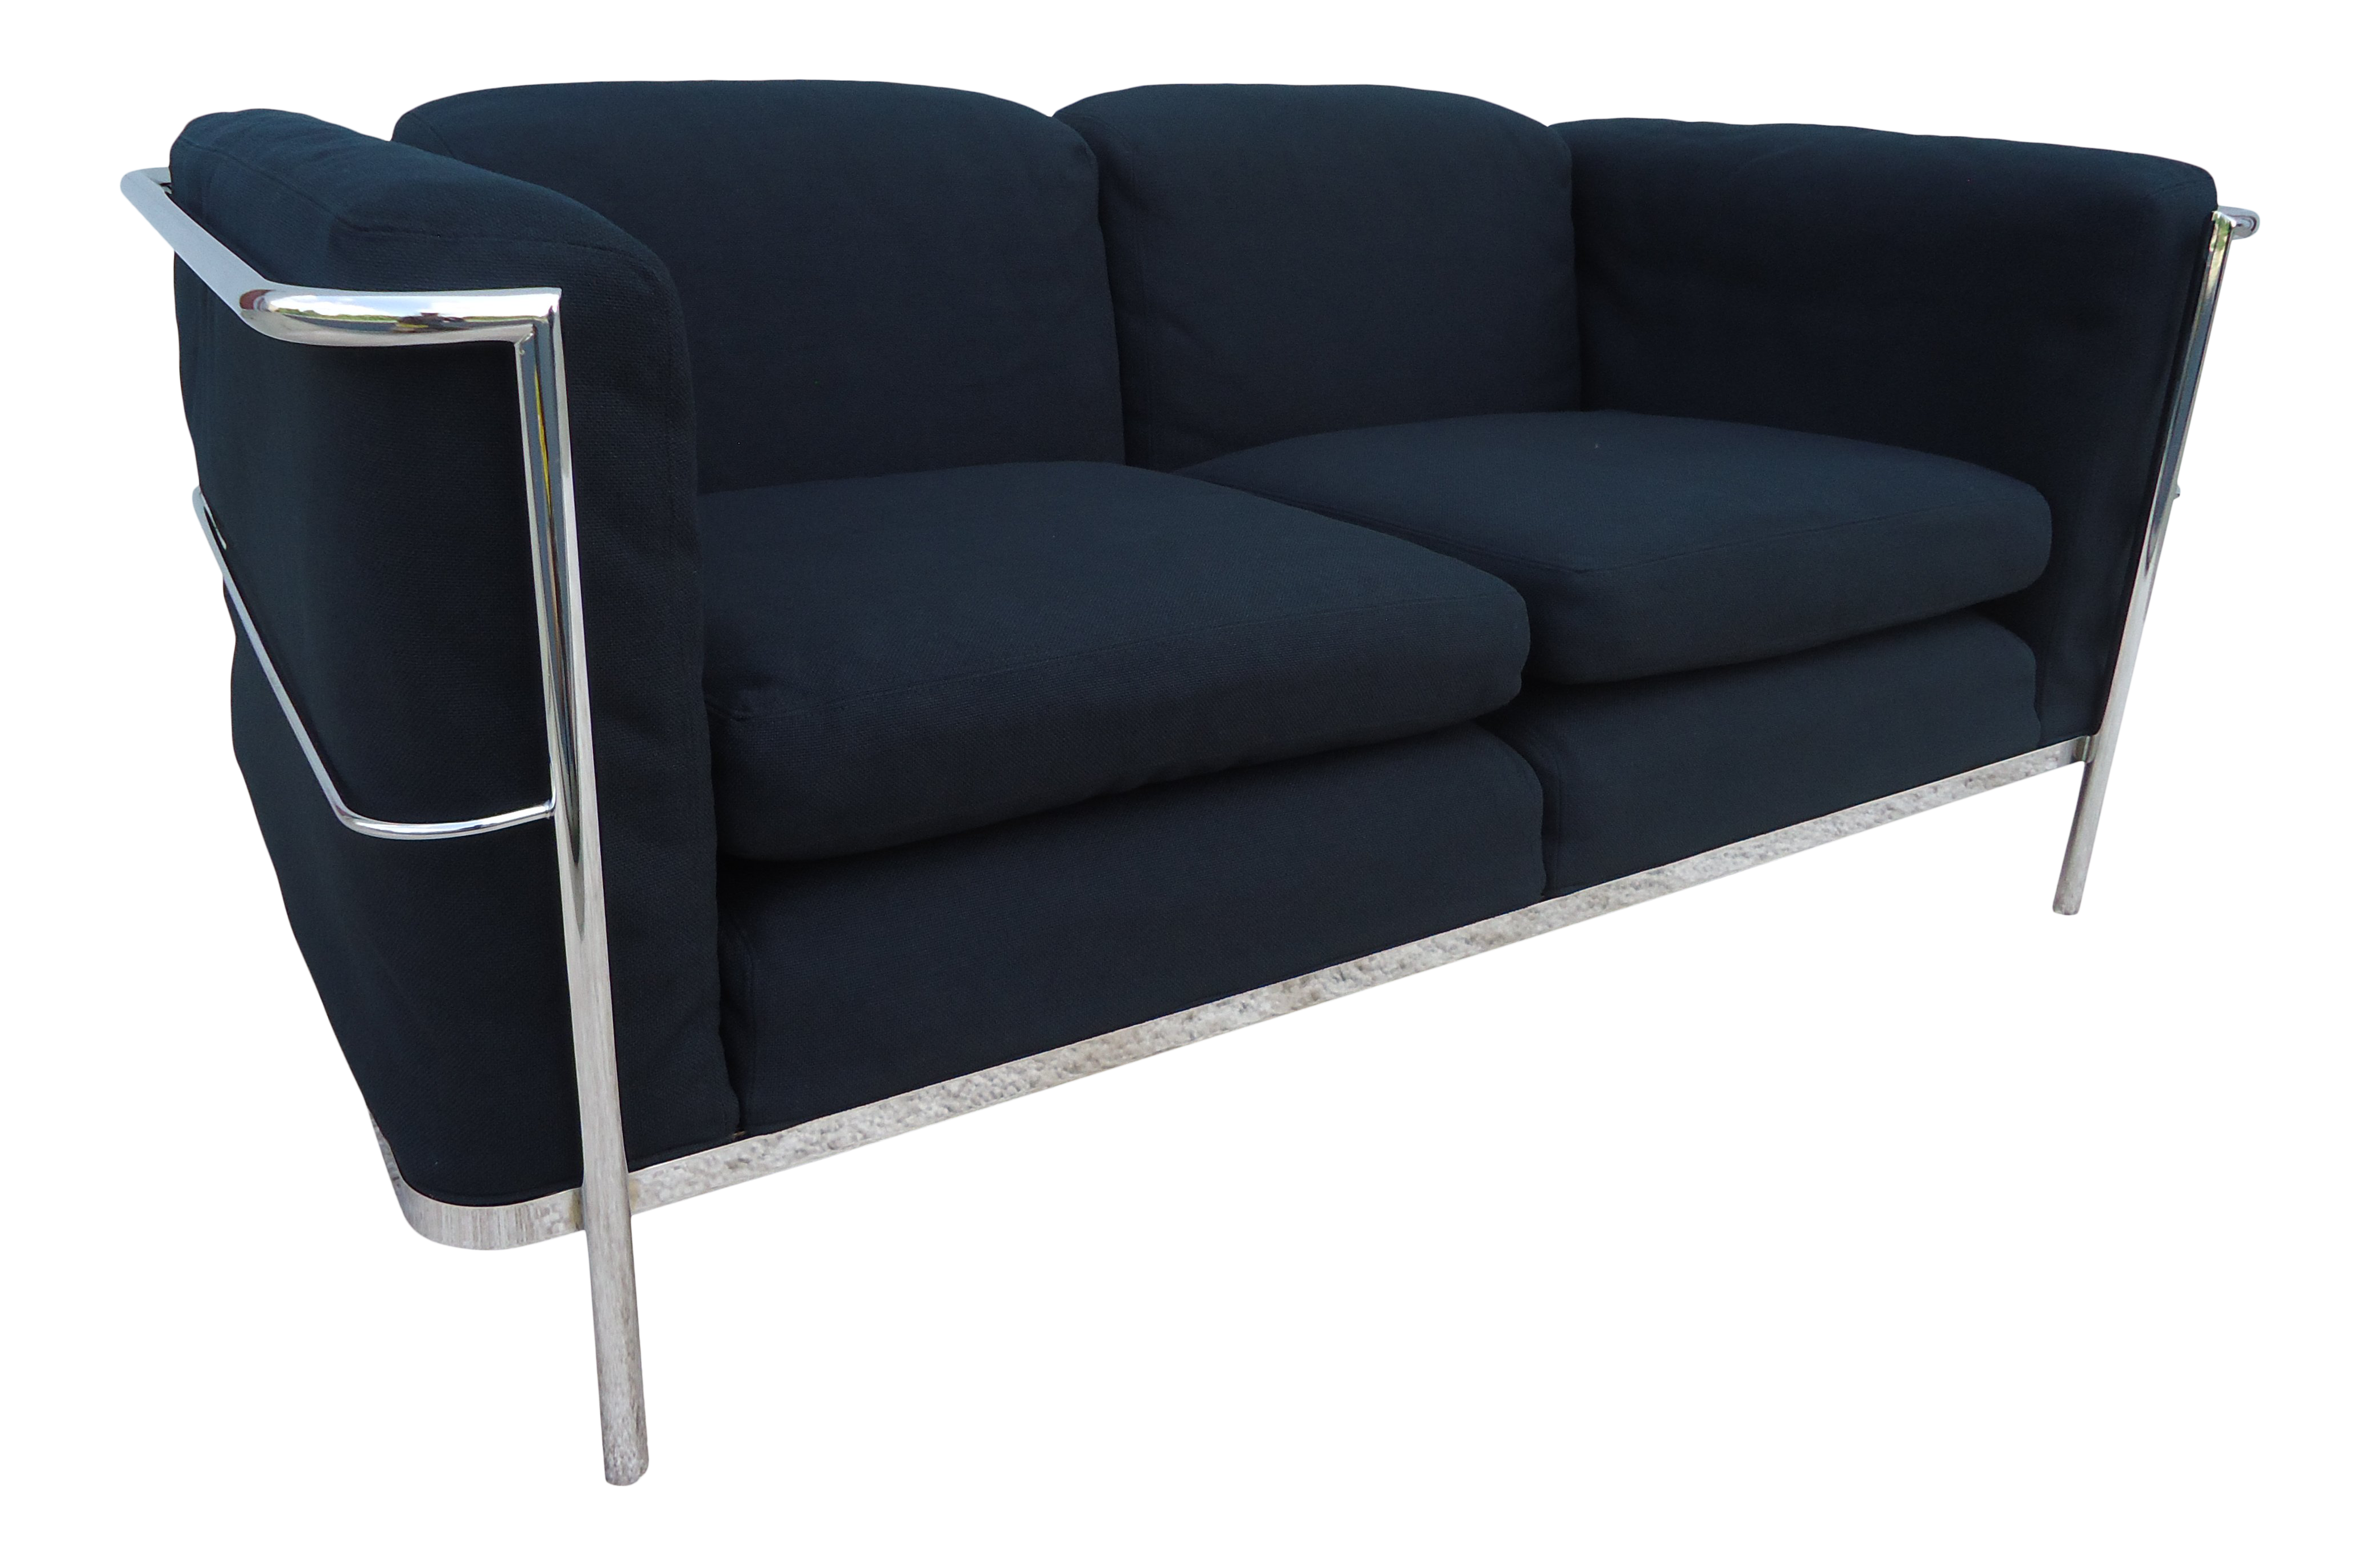 Awesome 1928 Vintage Jack Cartwright Le Corbusier Lc2 Style Black Loveseat Settee Machost Co Dining Chair Design Ideas Machostcouk